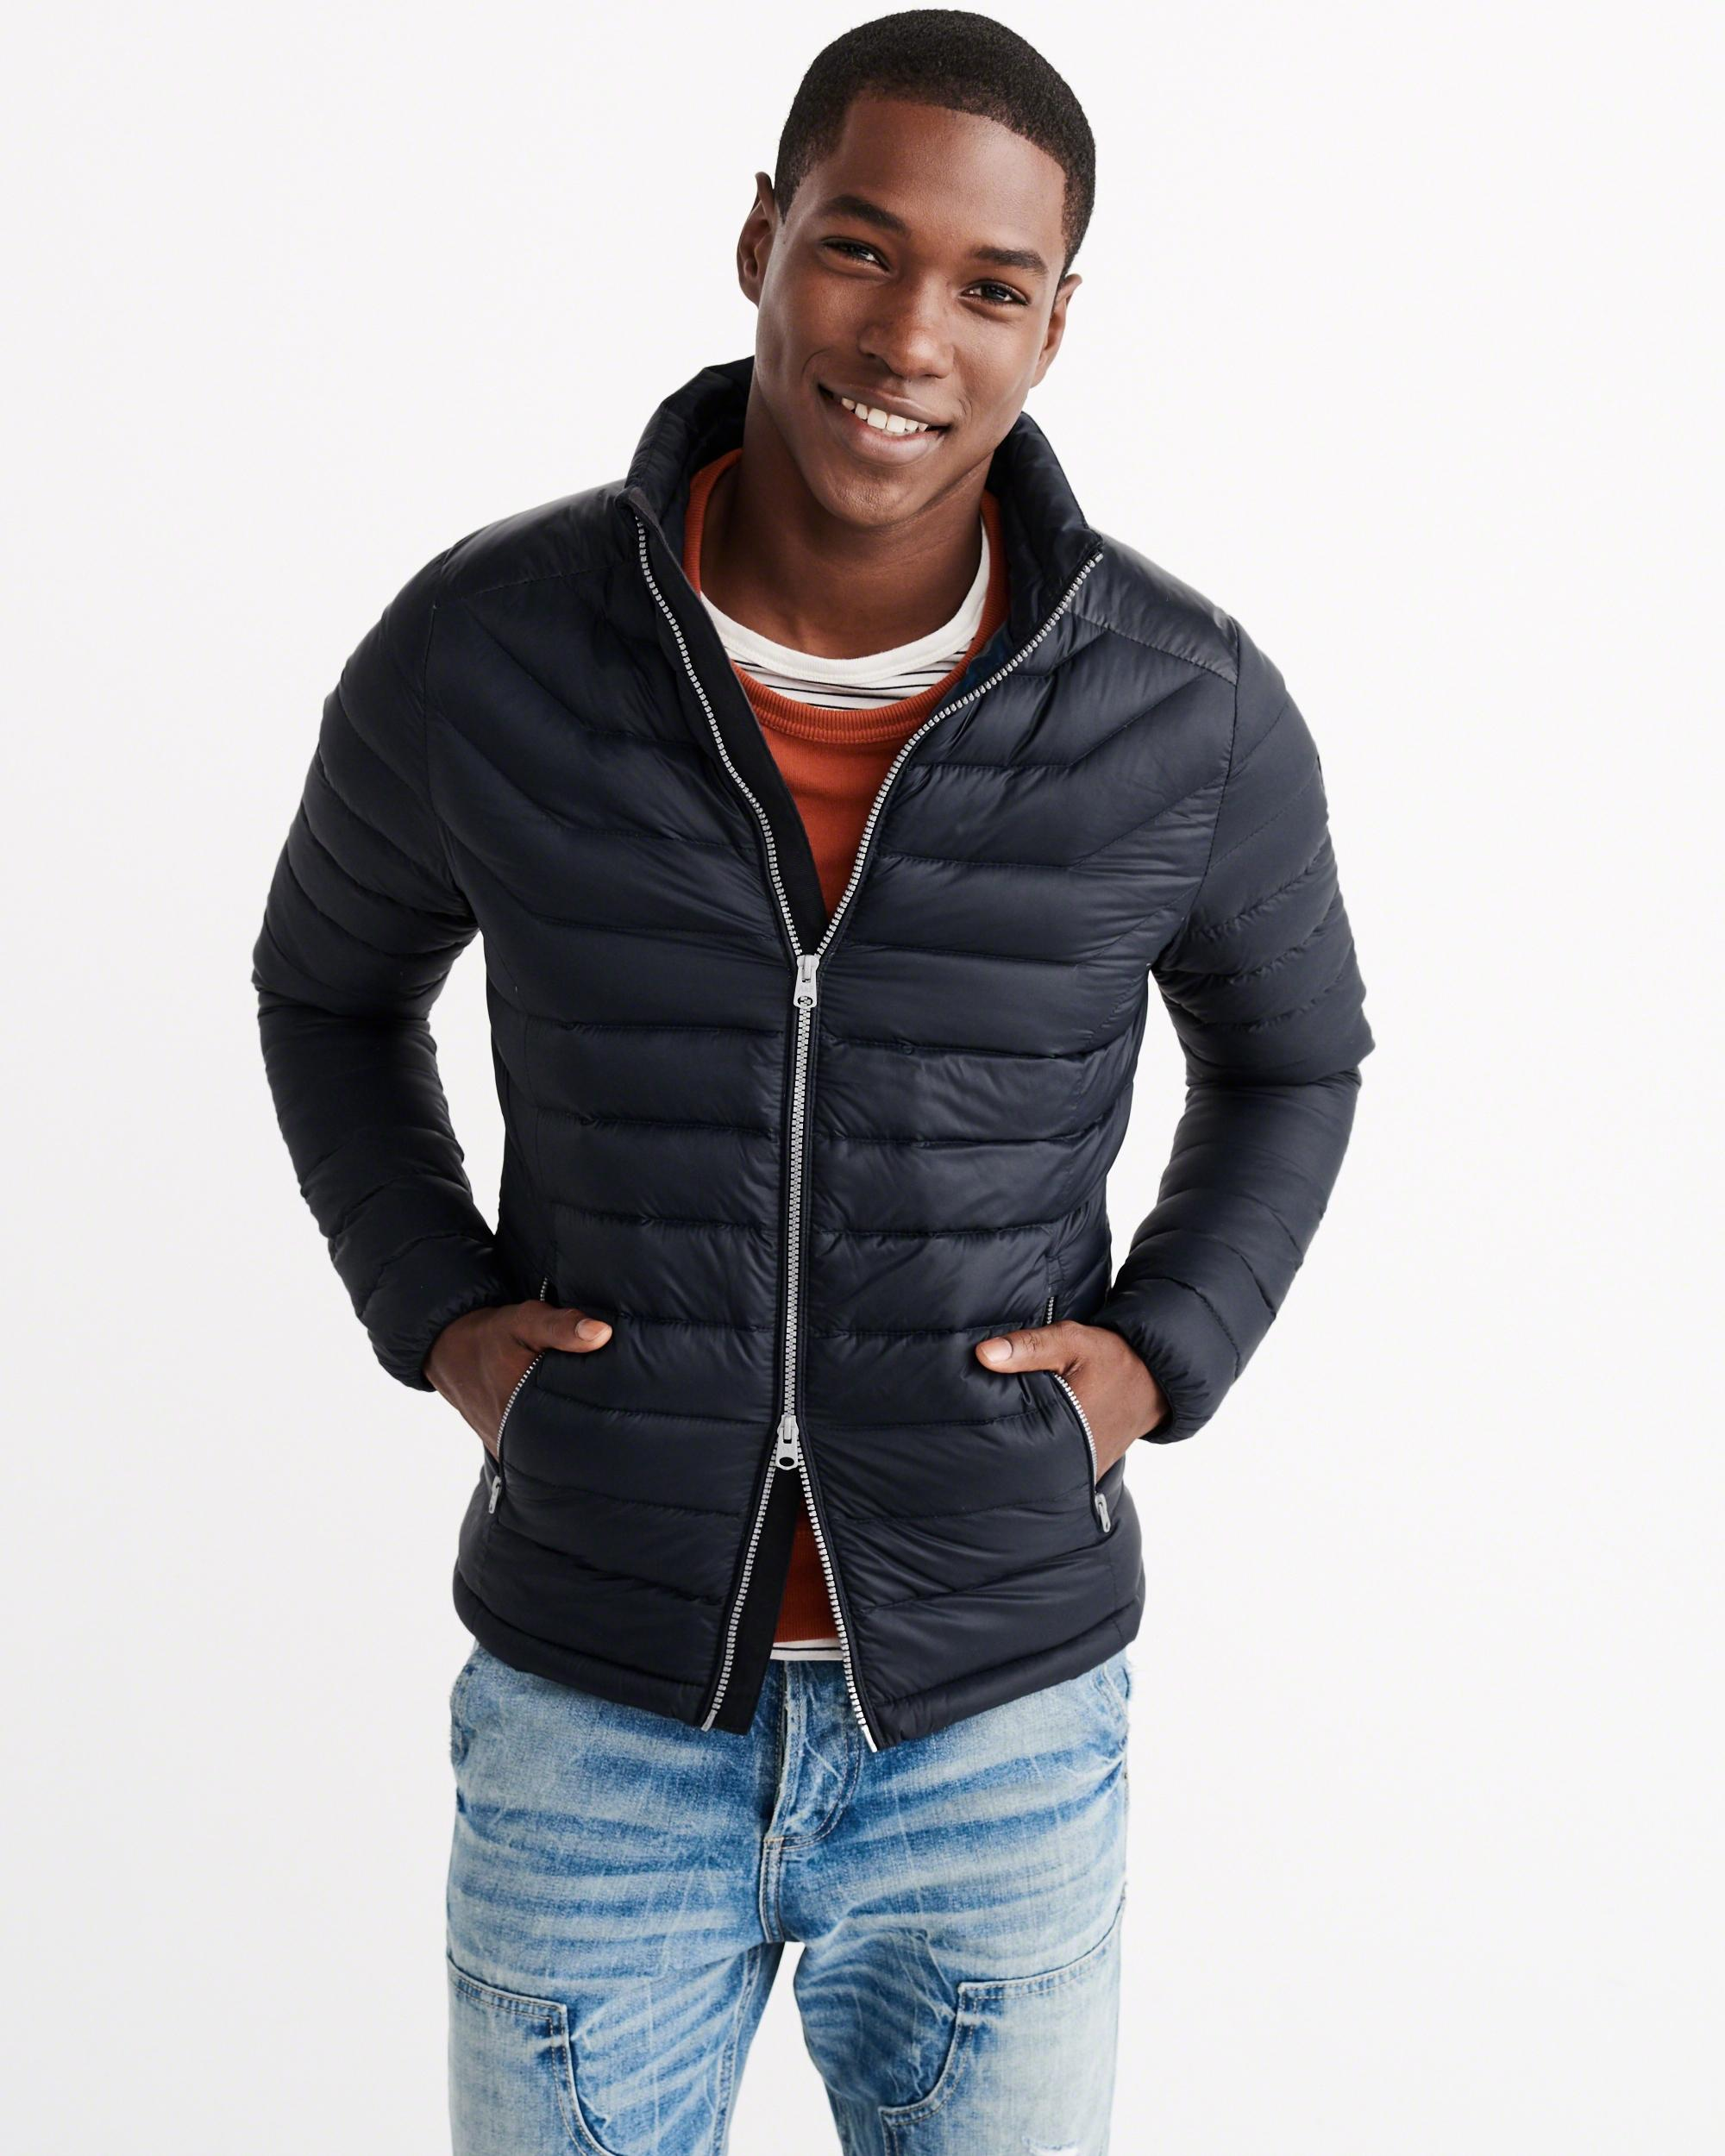 Abercrombie And Fitch Clothing Abercrombie And Fitch Hoodies Abercrombie And Fitch Jackets Abercrombie And Fitch Sweater: Abercrombie & Fitch Lightweight Puffer Jacket In